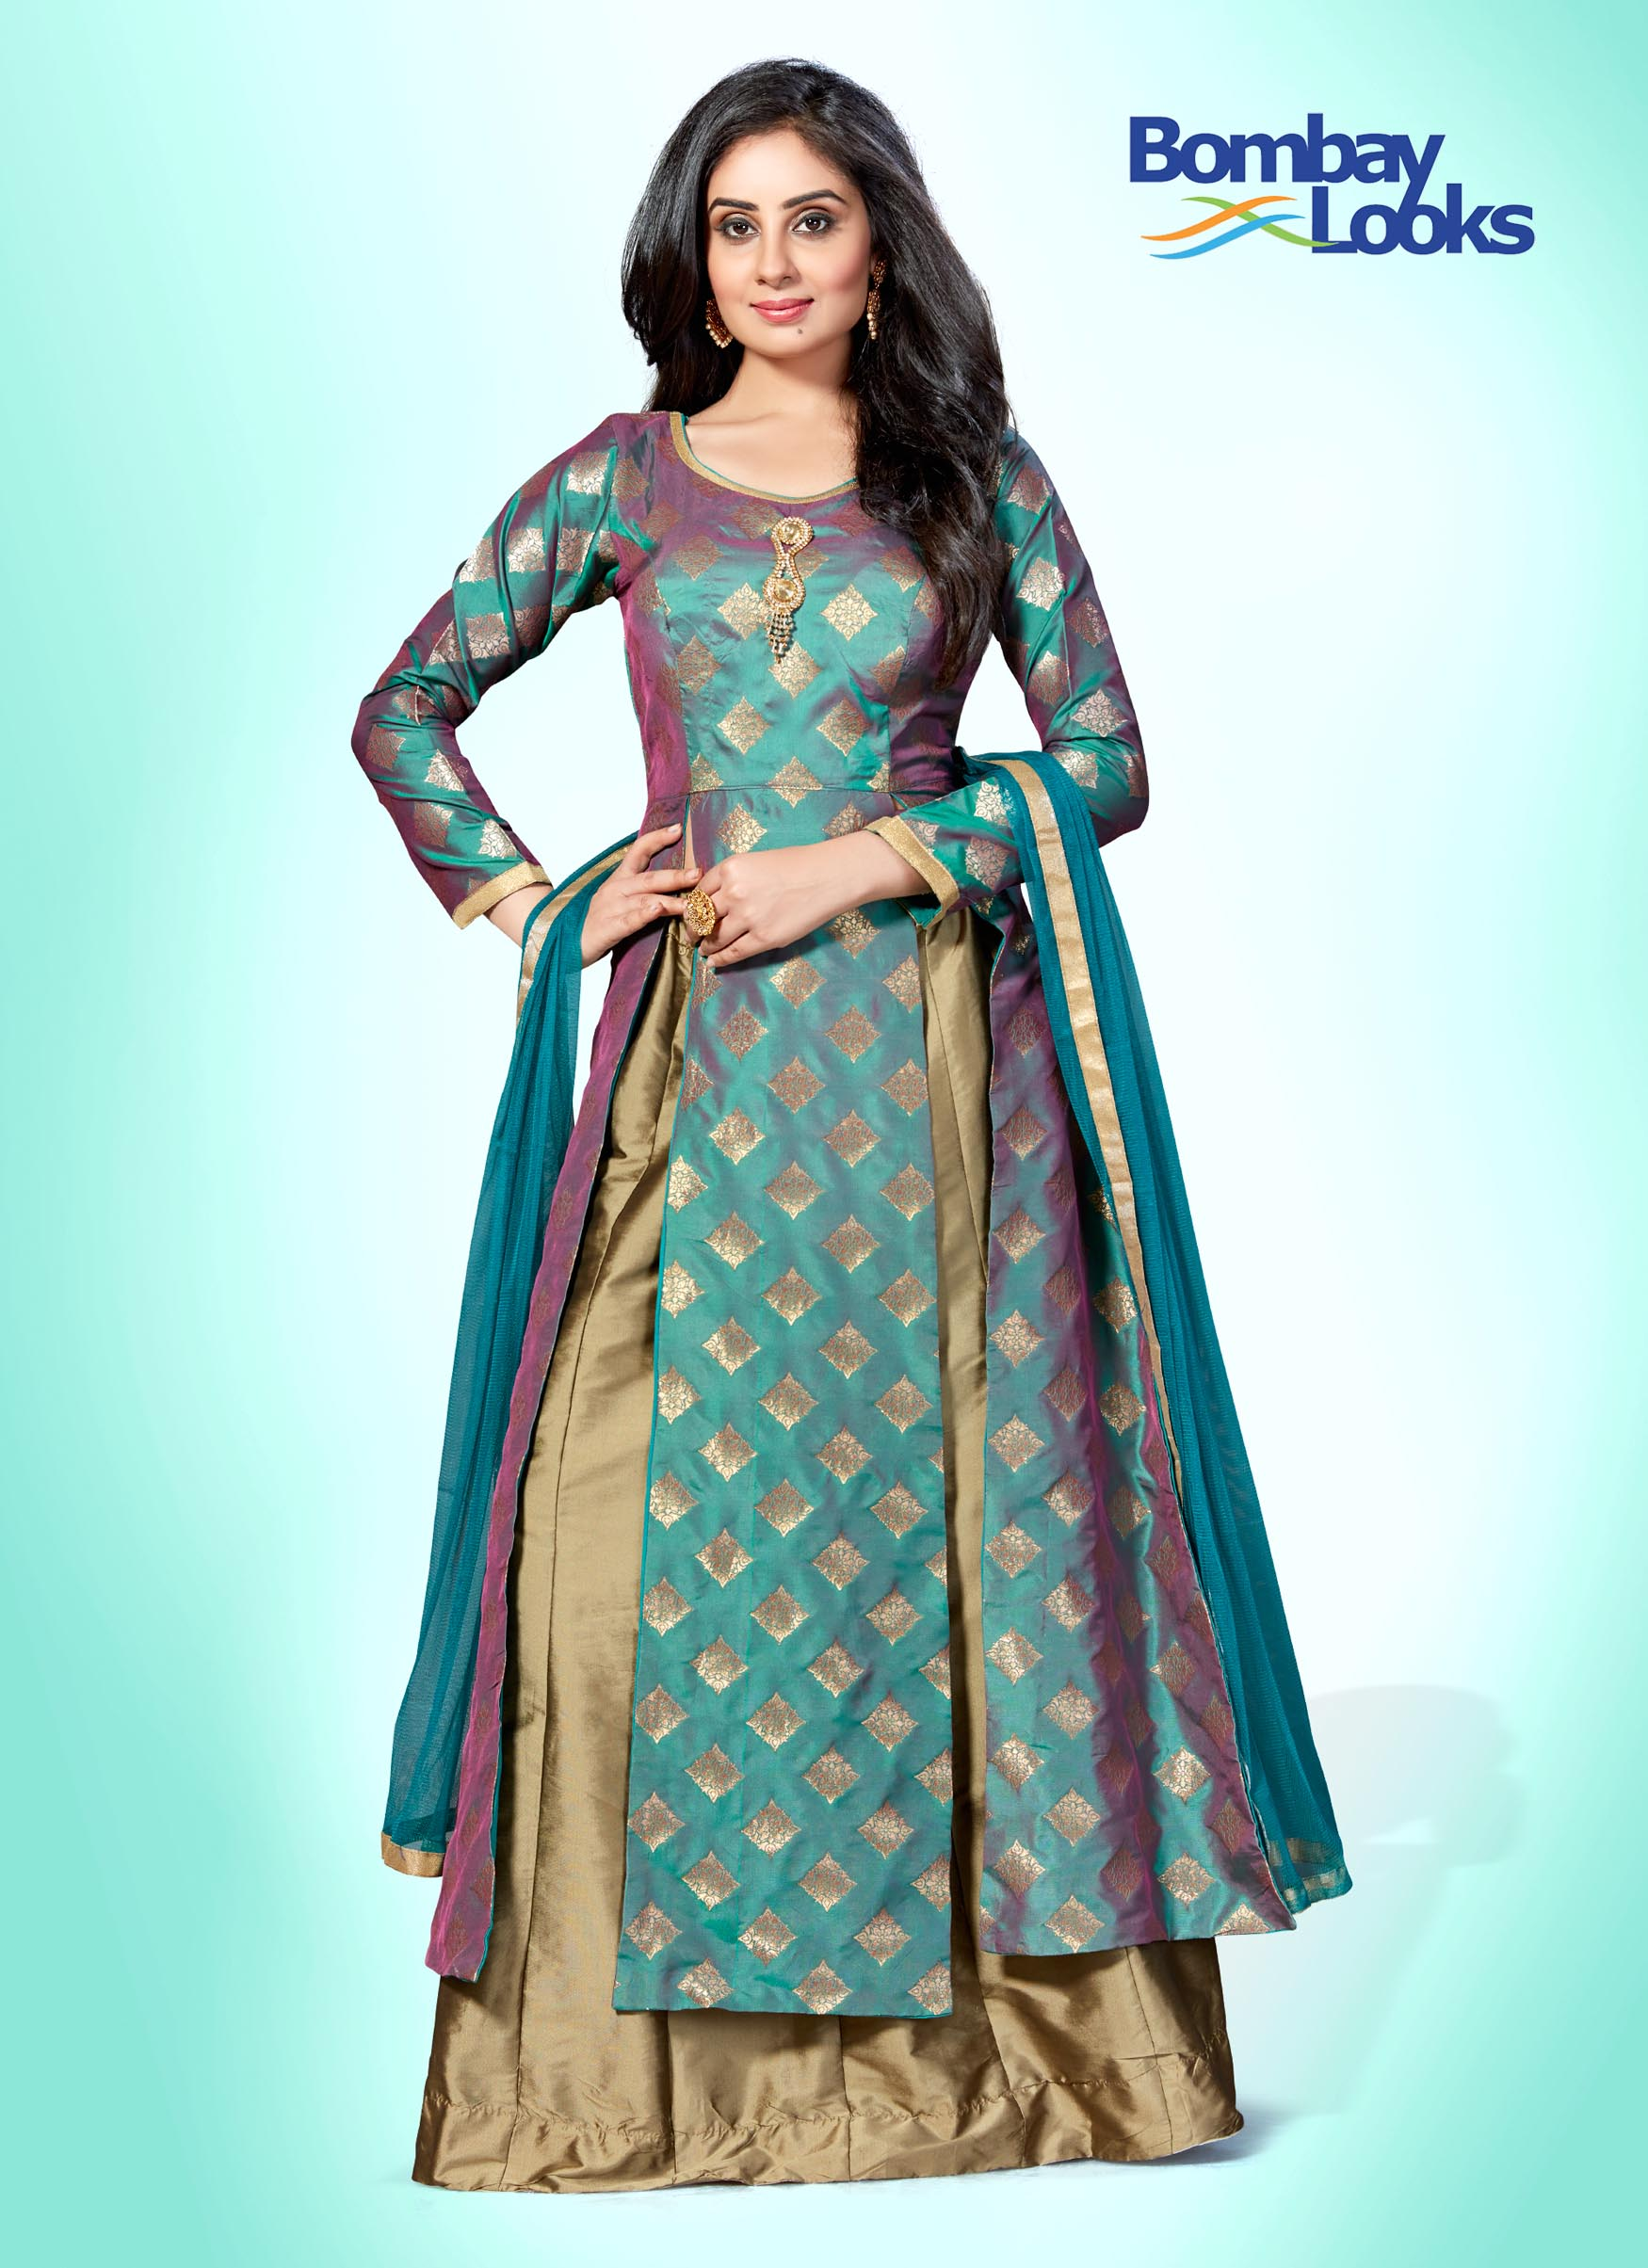 Dual tone green and purple suit set with antique gold skirt